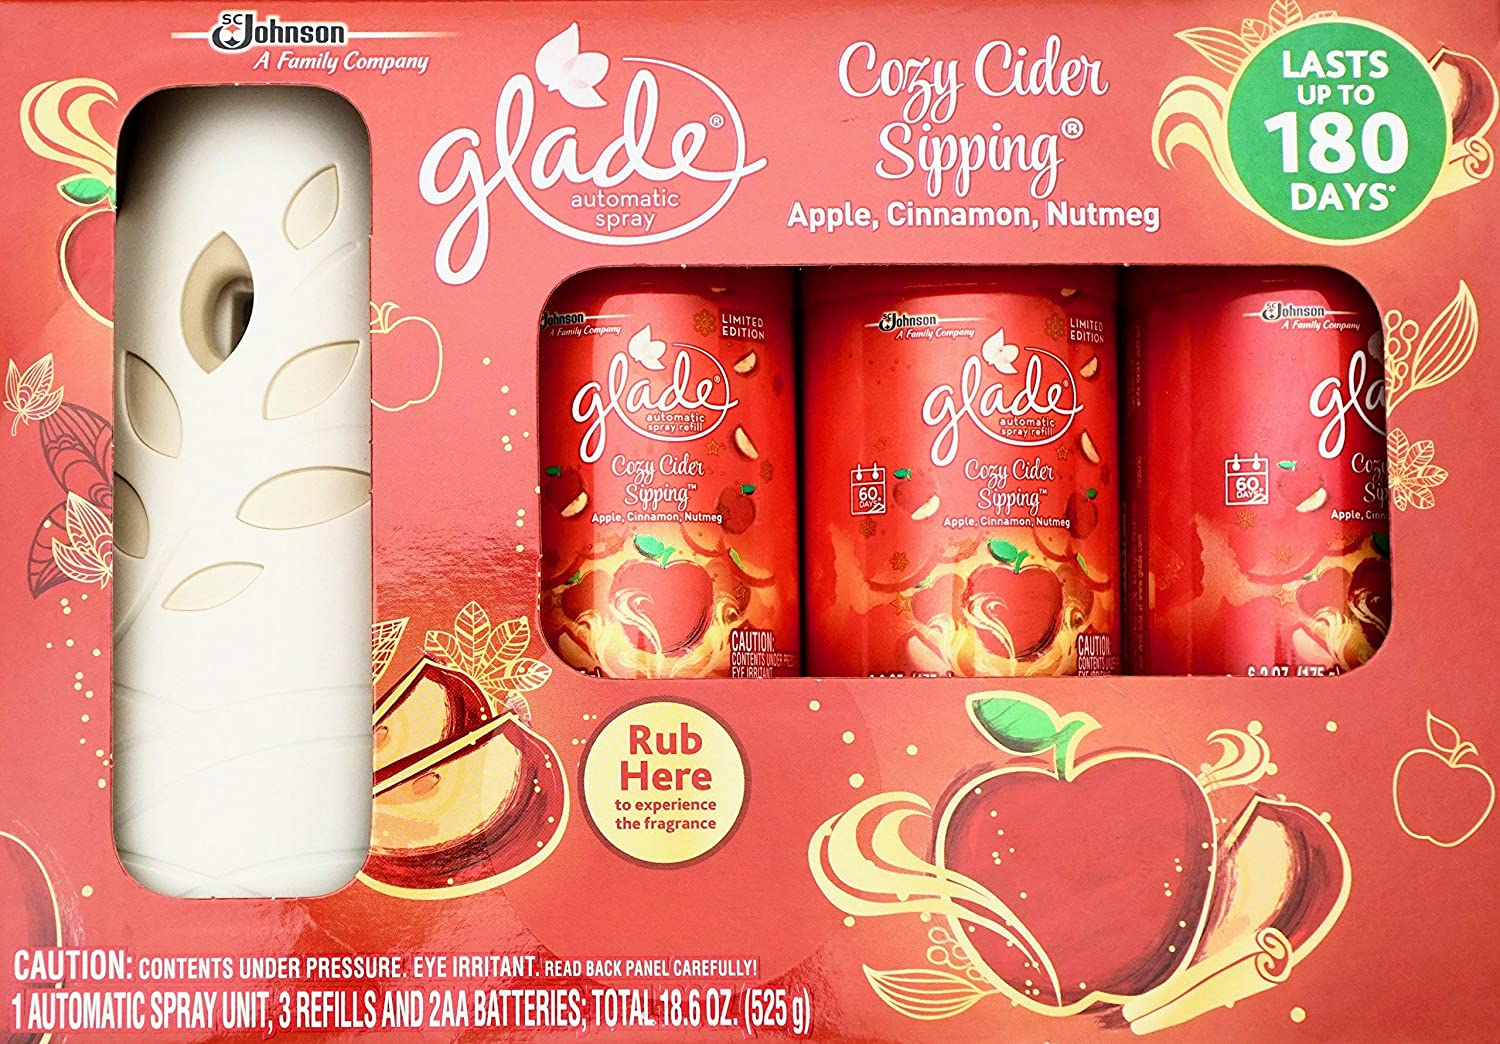 Glade Automatic Spray Cozy Cider Sipping, Automatic Spray & 3 Refills